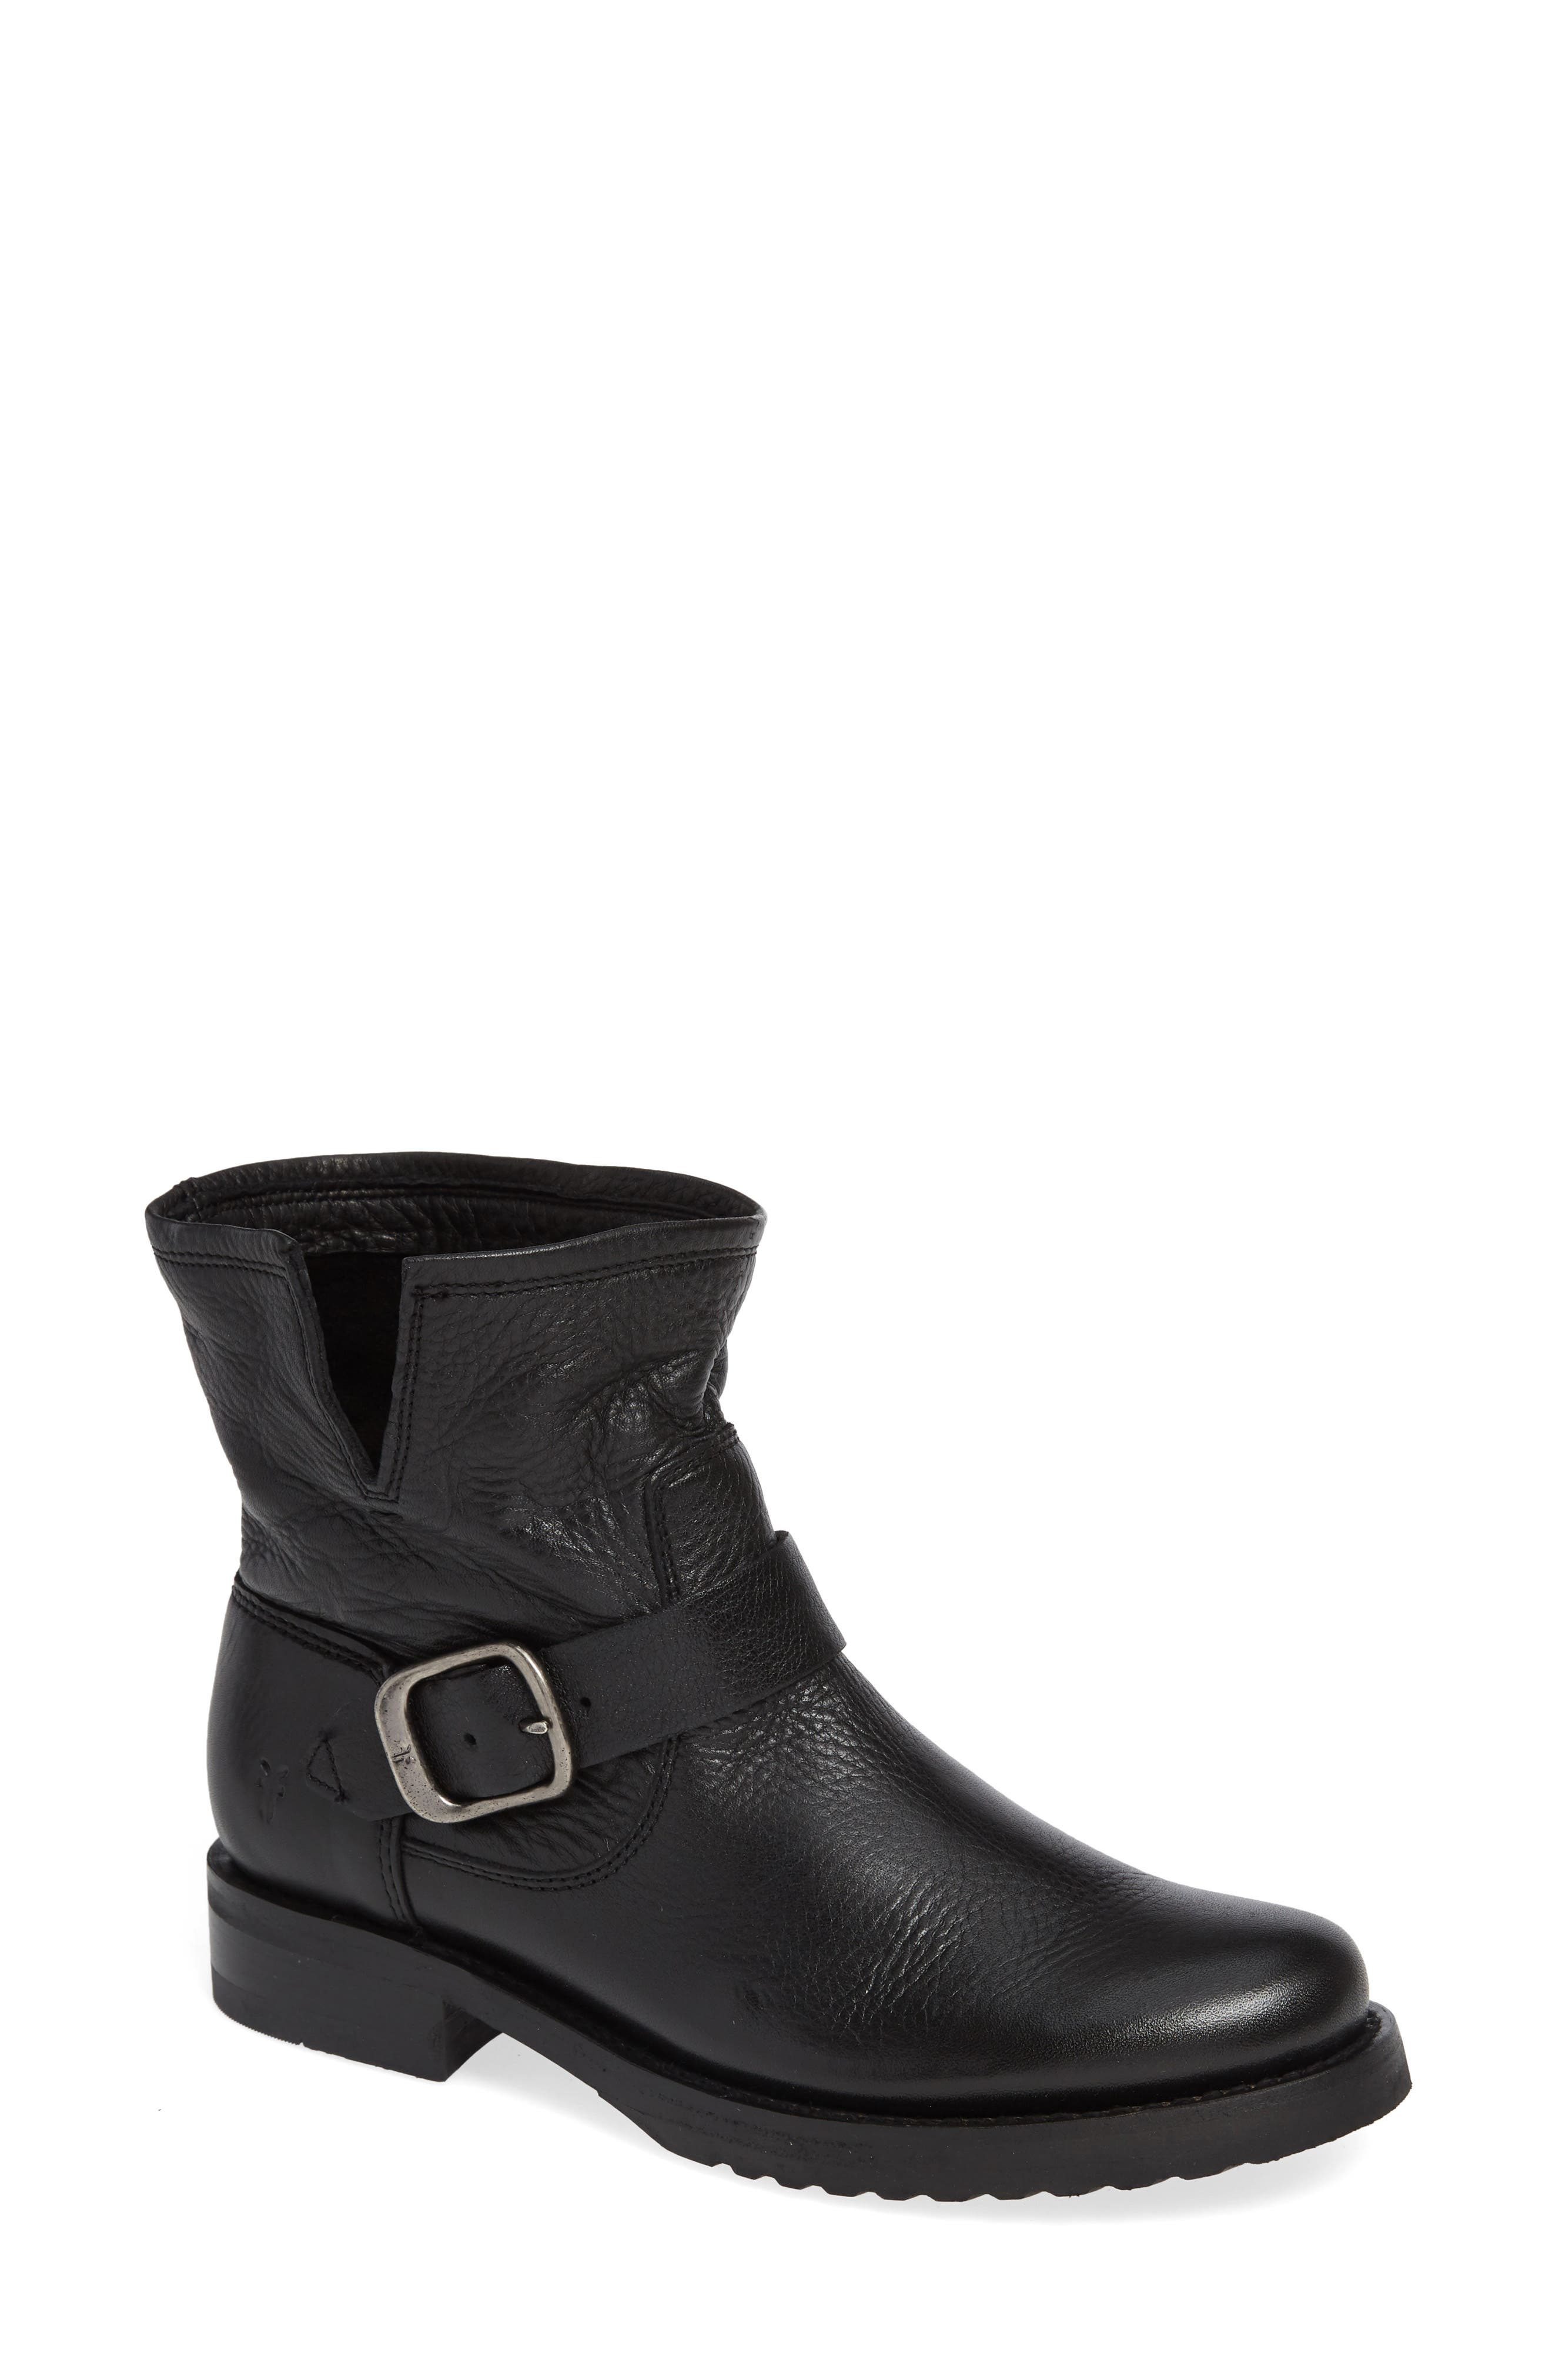 FRYE Veronica Bootie, Main, color, BLACK LEATHER